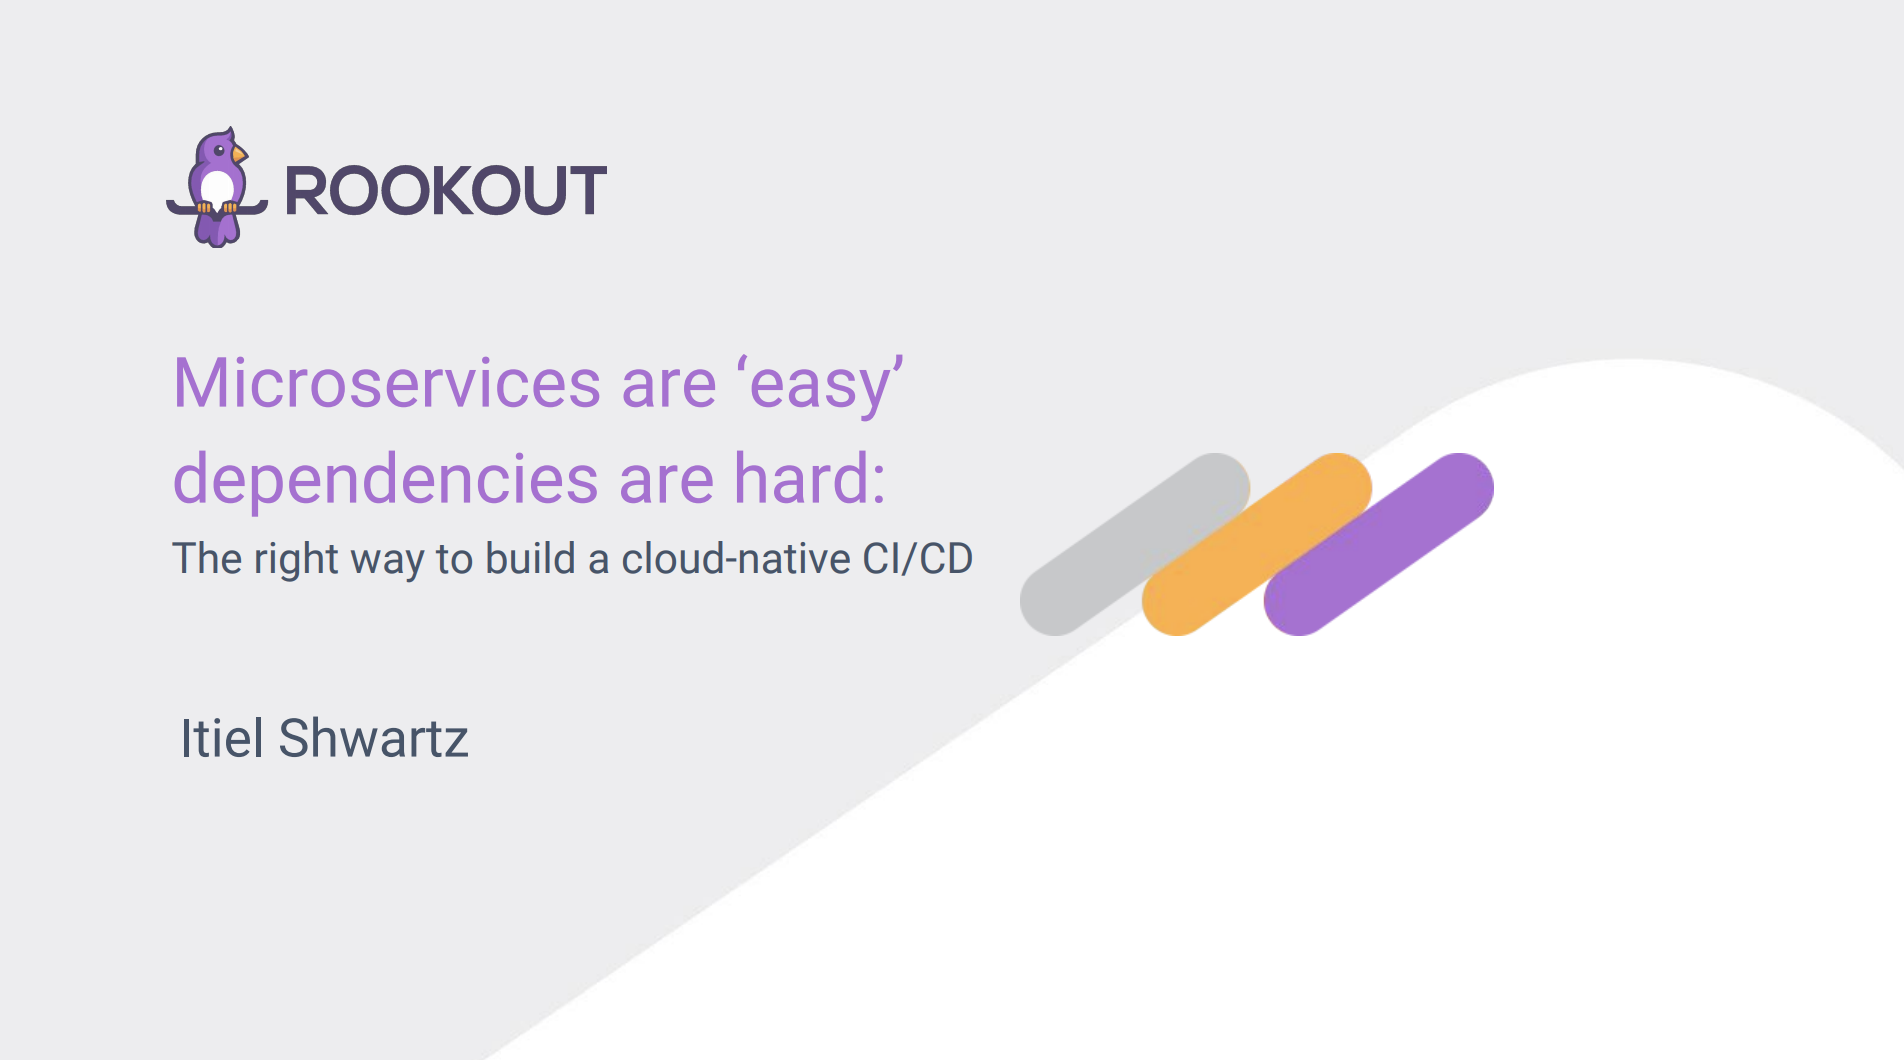 Microservices are 'easy' - dependencies are hard